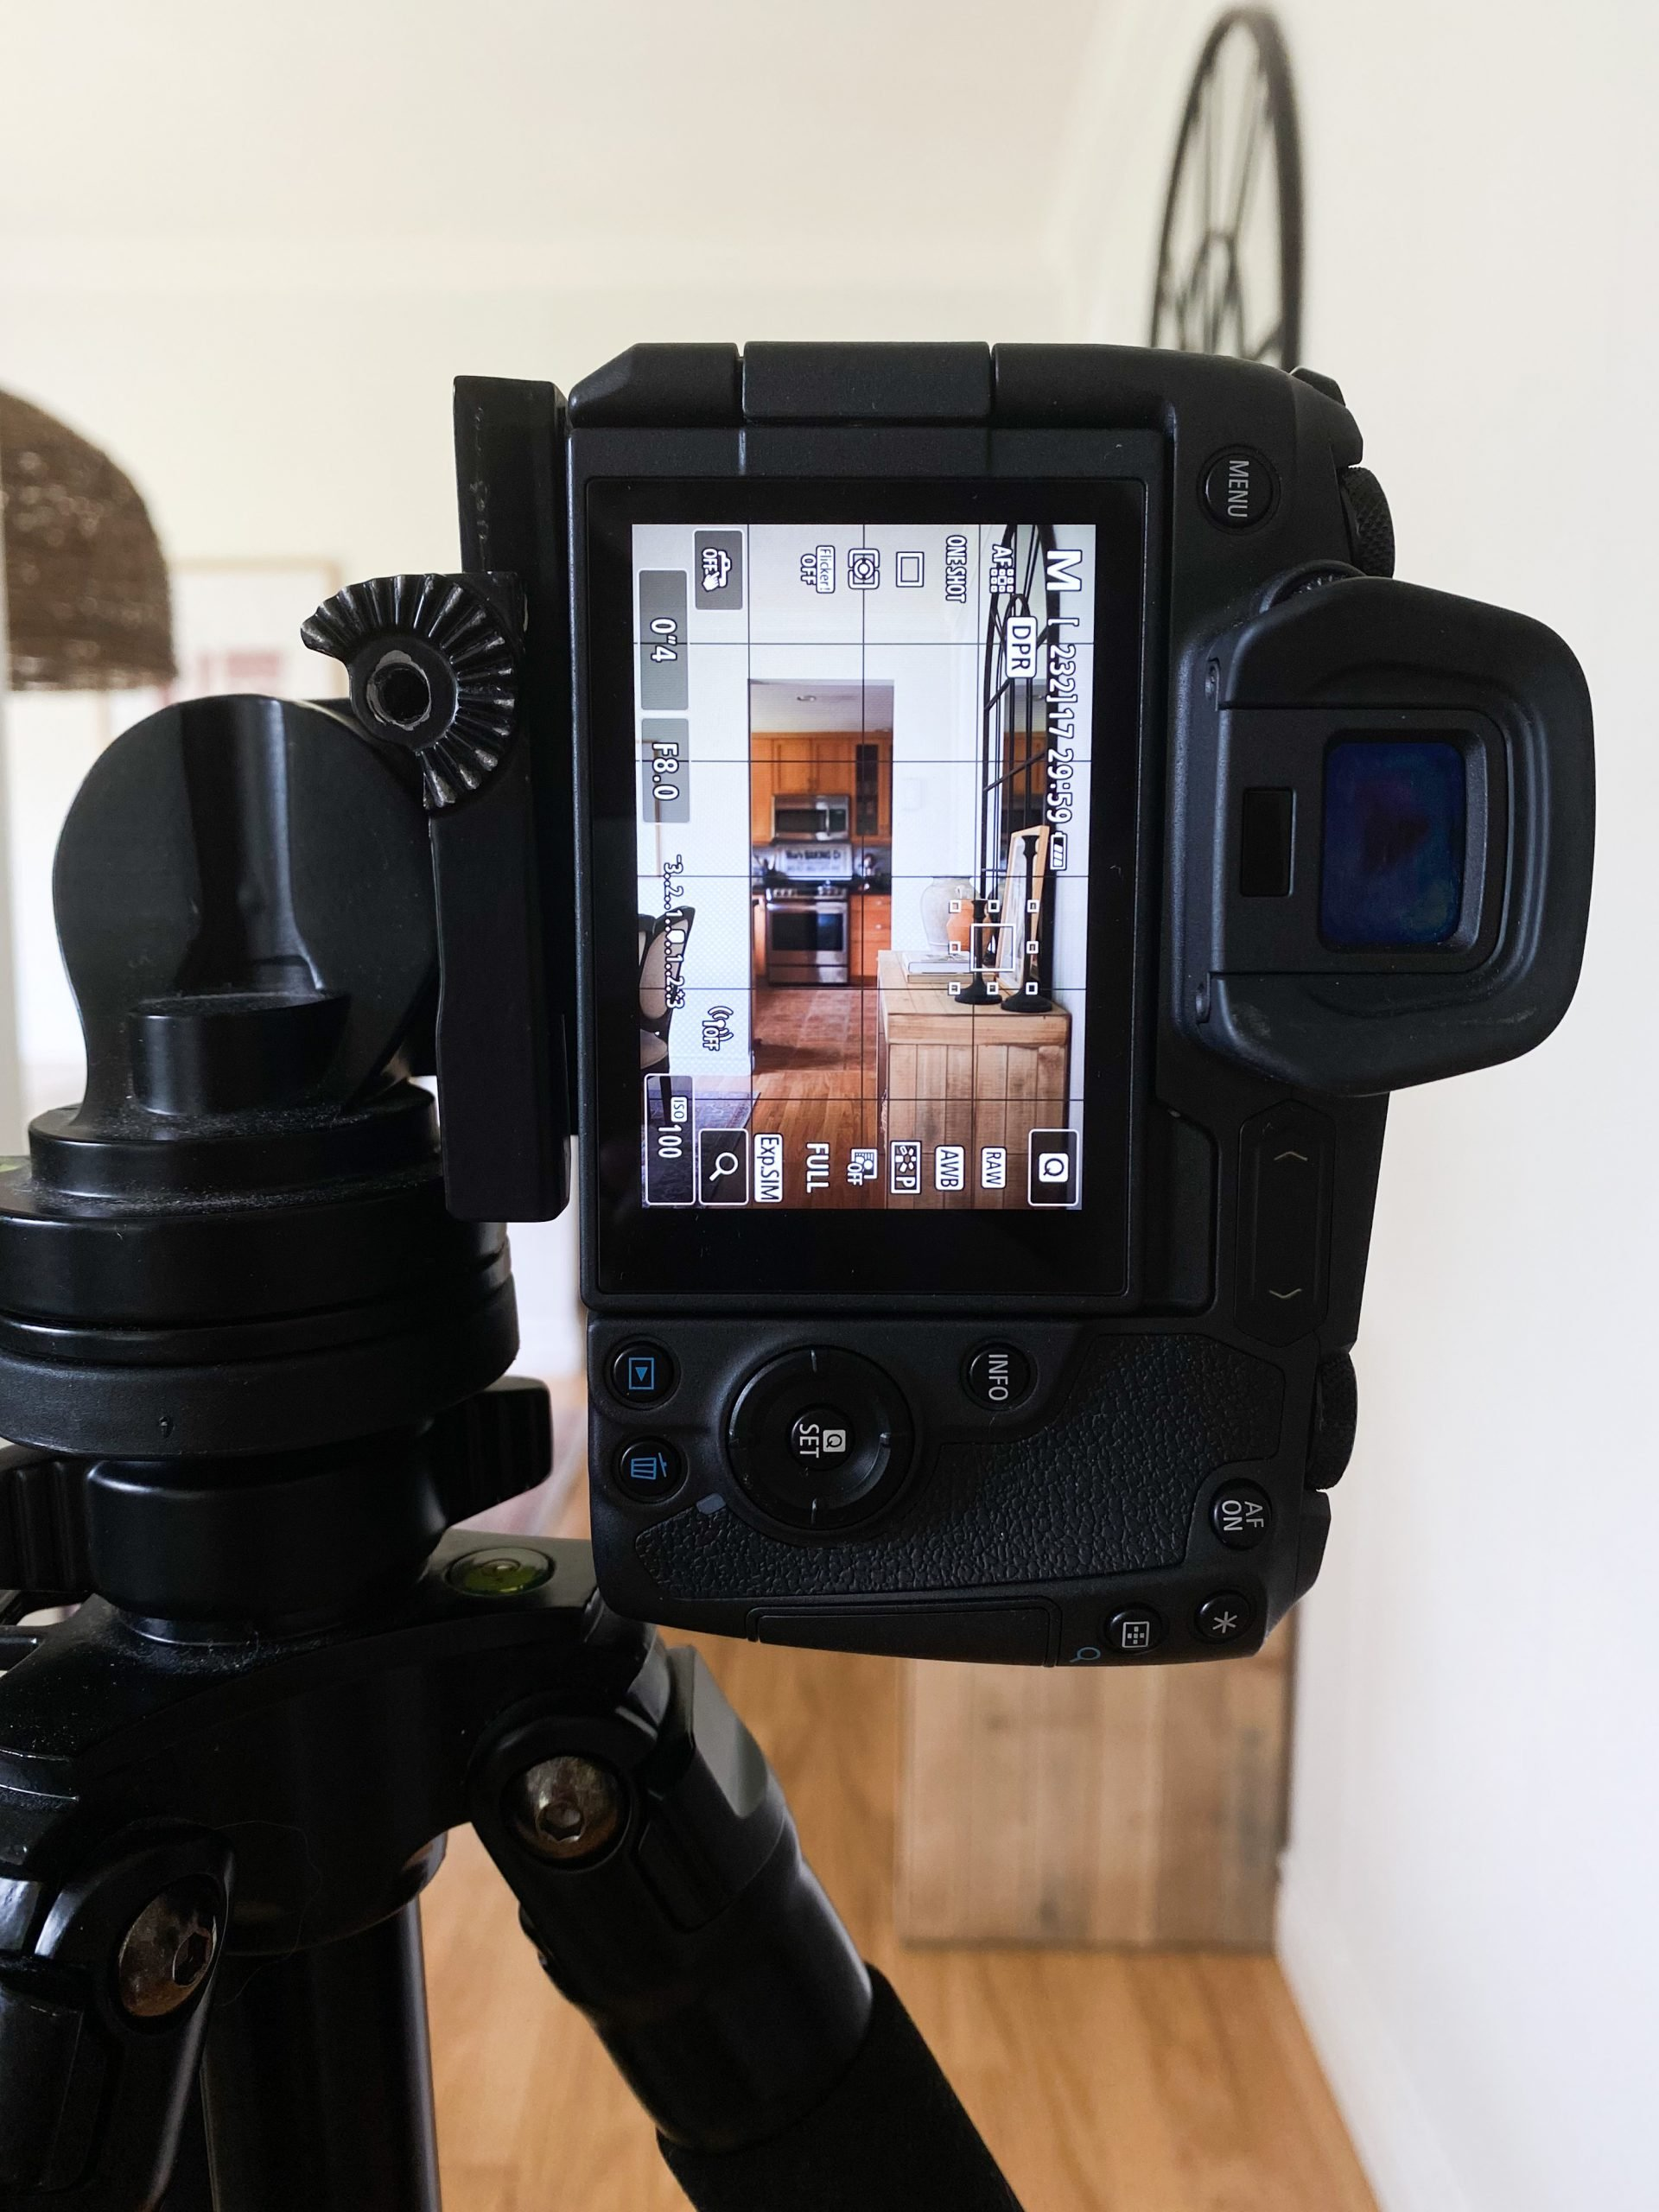 The Basics Of Interior Photography For The Beginner. What I've taught myself in the last 12 years of using a DSLR and 5 years of blogging. Who has money to hire a photographer for every Instagram photo or Blog post? I didn't! Here's What I've learned over the last 5 years that has landed me lots of big brand deals!